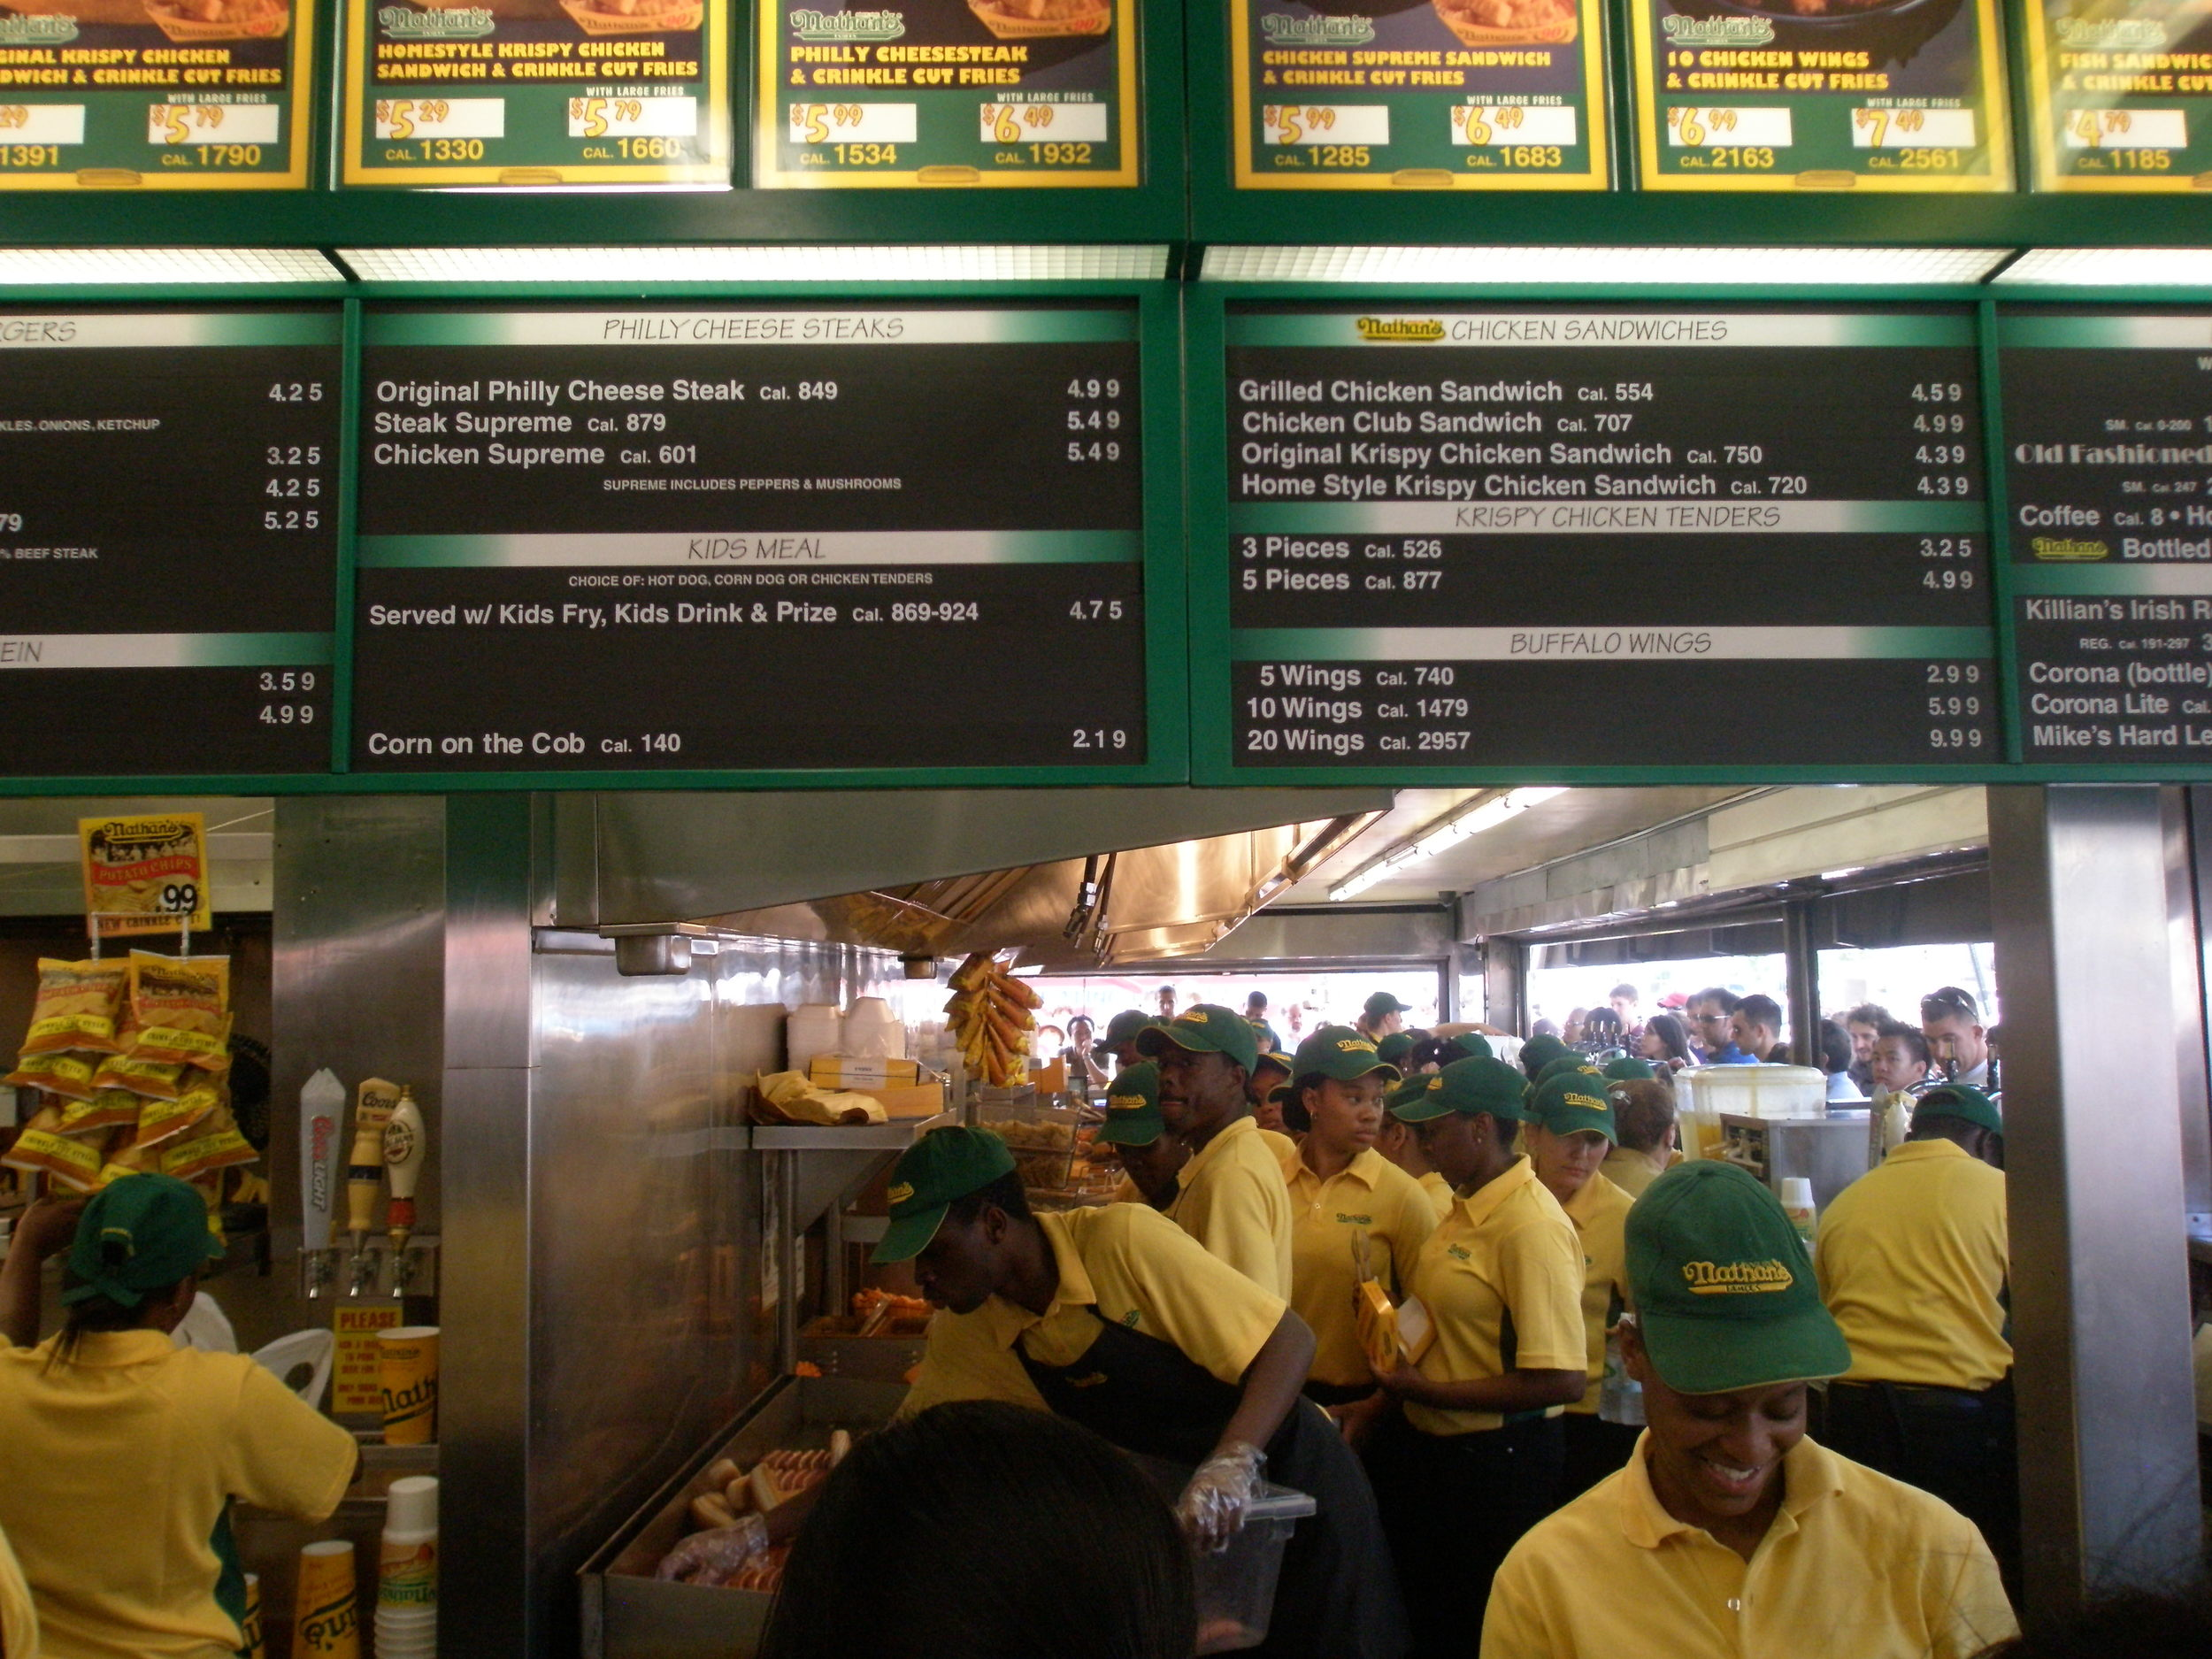 inside nathans stand